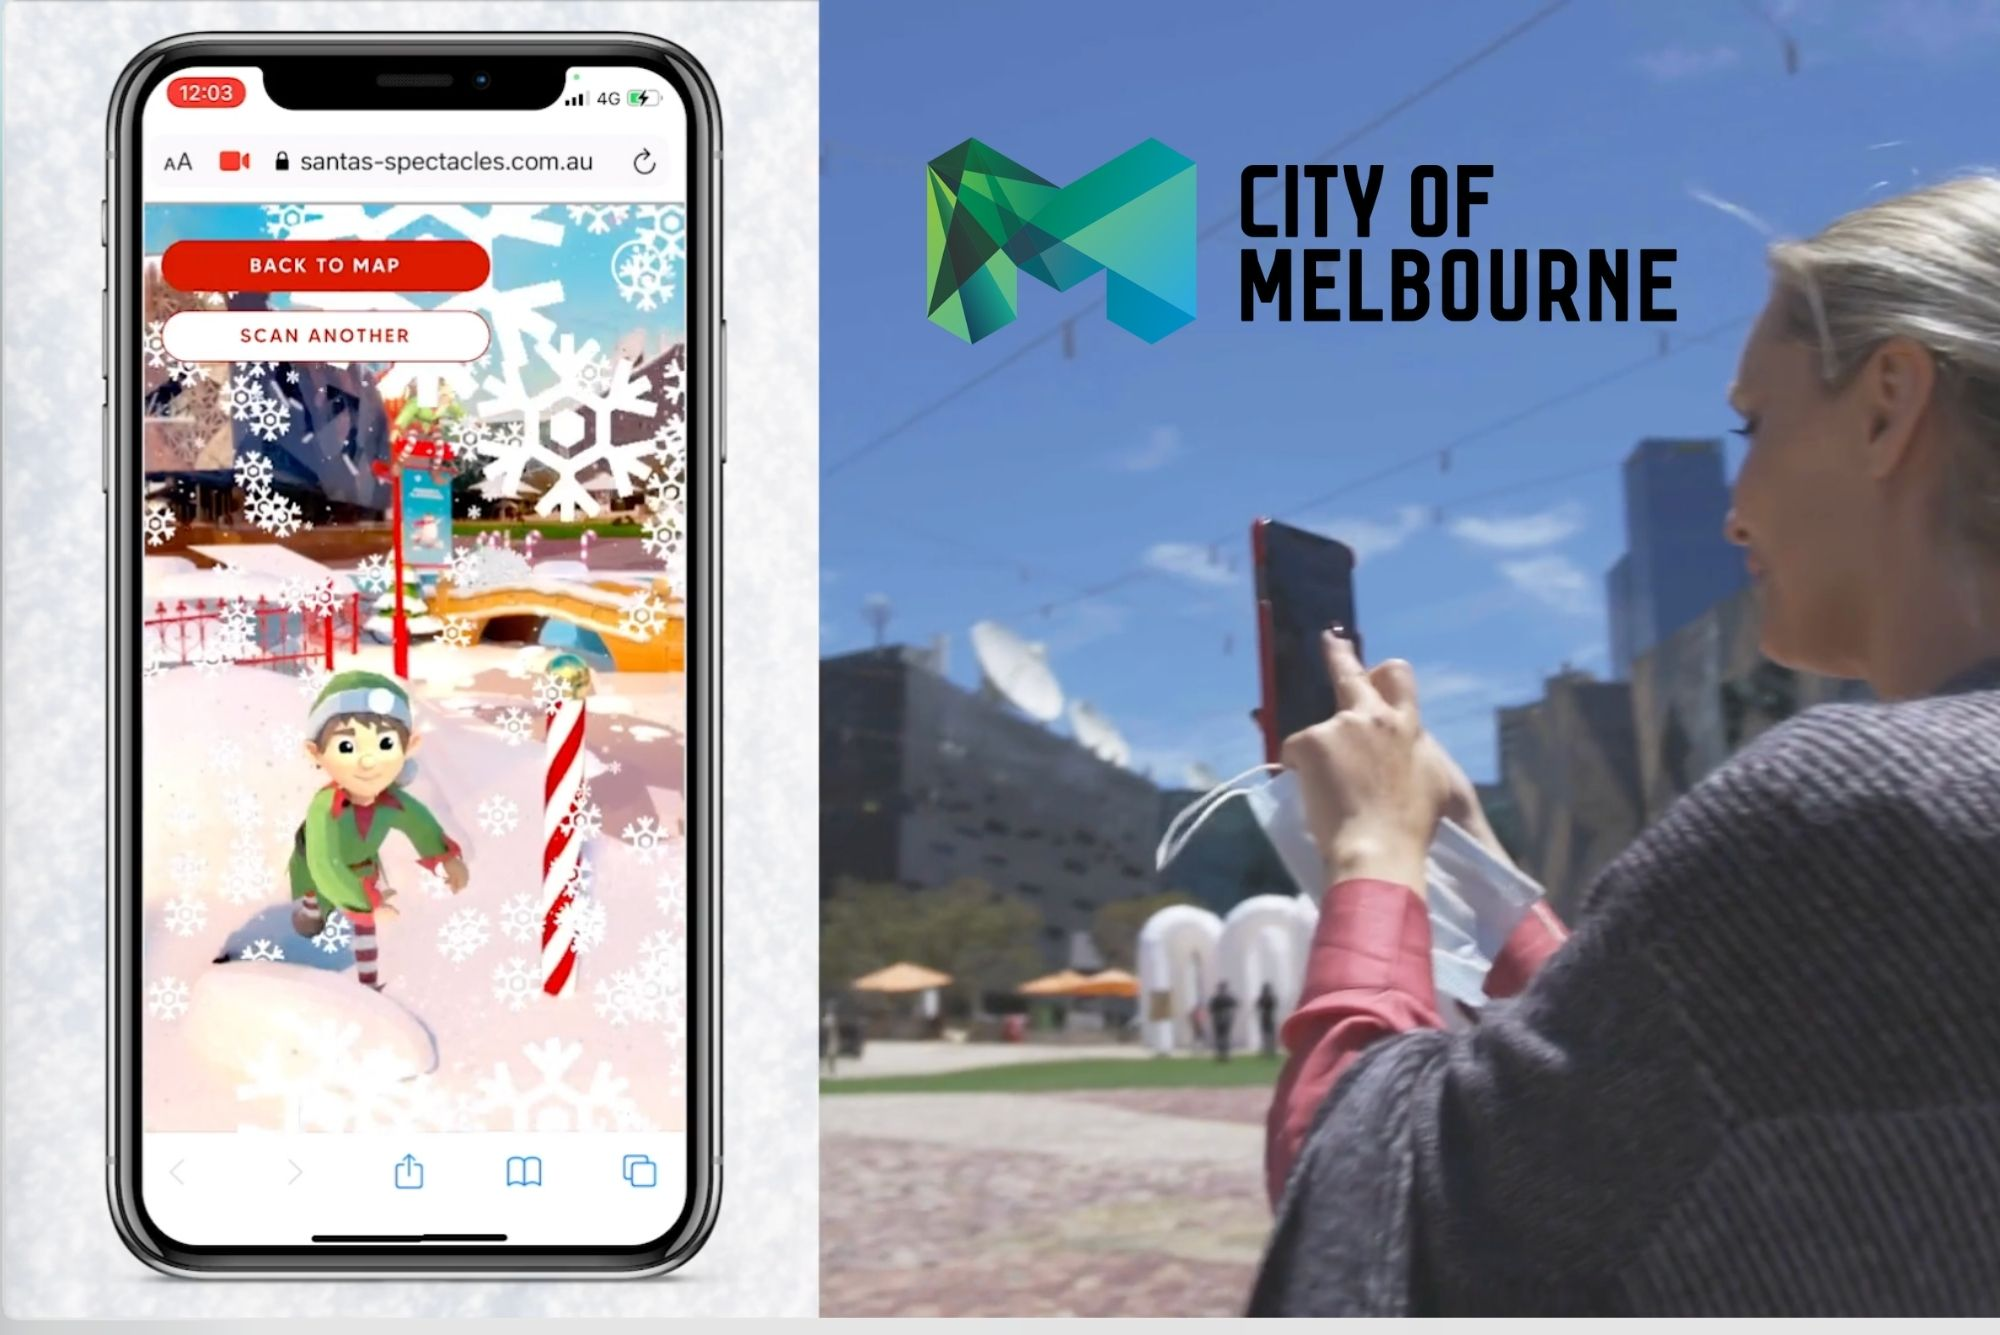 City of Melbourne AR 'Santas Spectacles' Experience